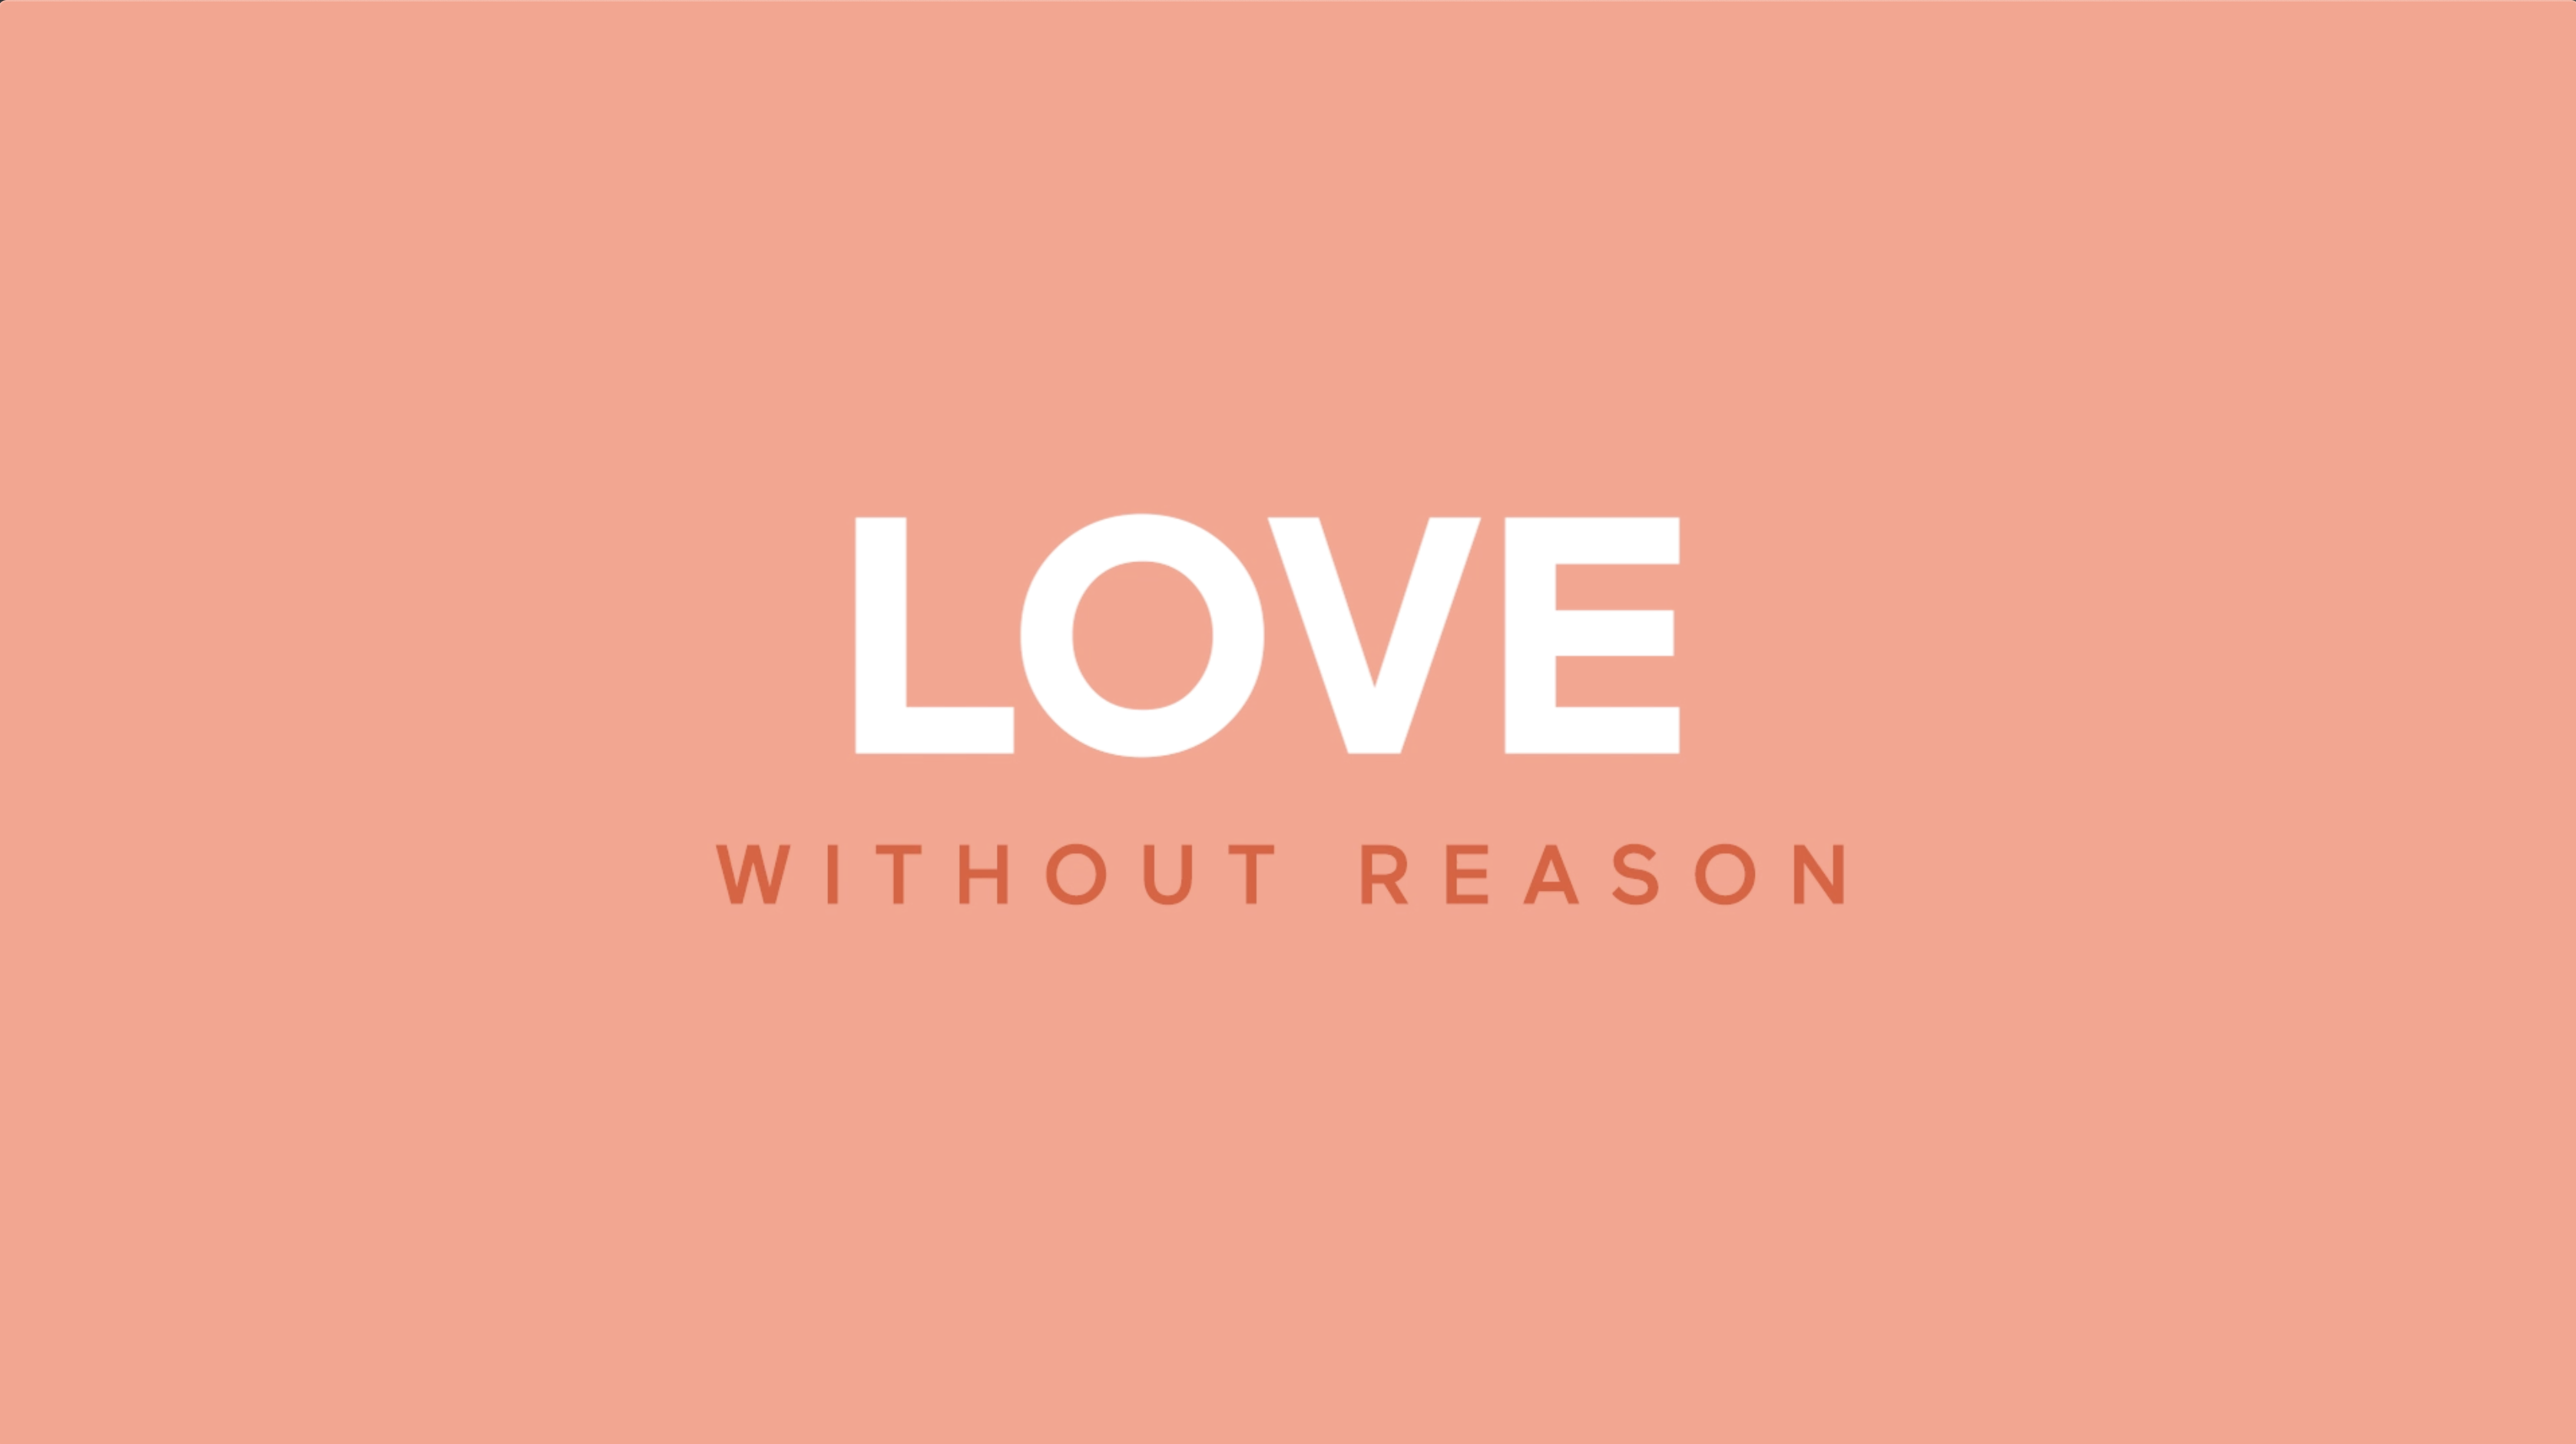 mbg - Love Without Reason